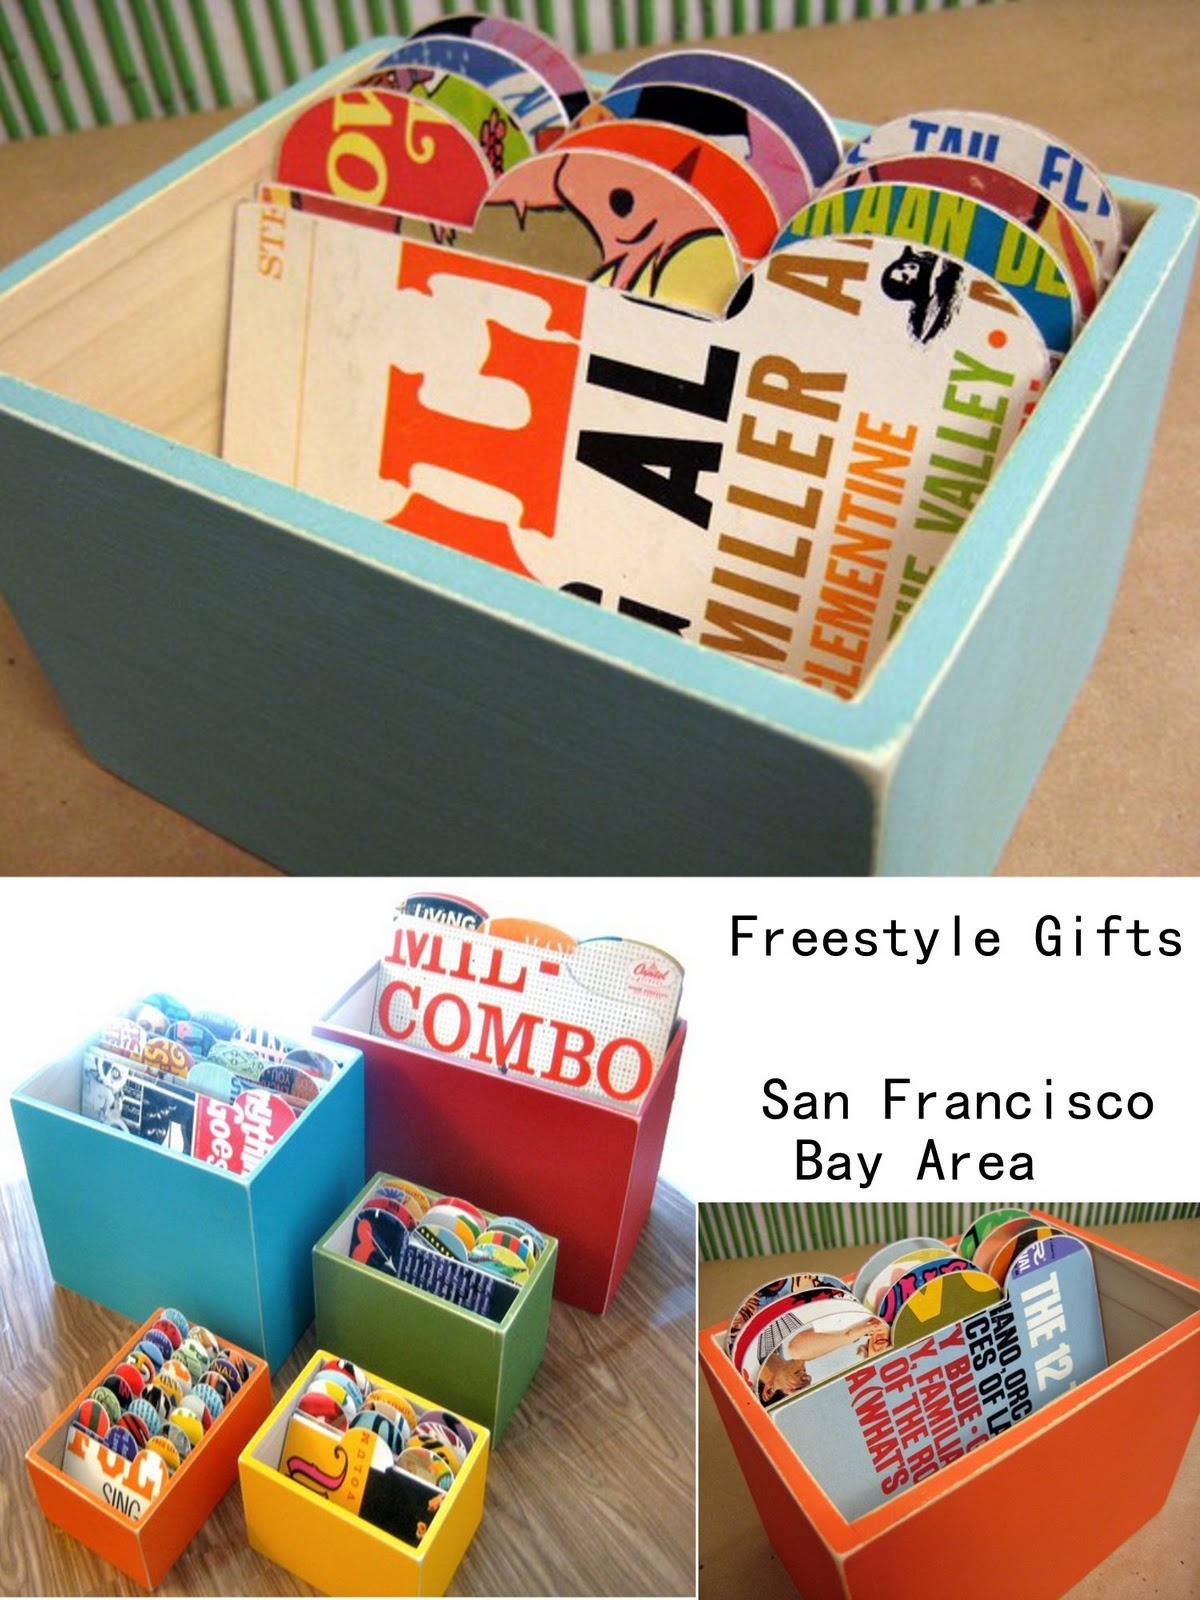 ... Of Handmade Gift Items Using Vintage Papers And Found Objects! I Can  Totally See The Record Album File Storage Containers In Any Cool Office  Space!